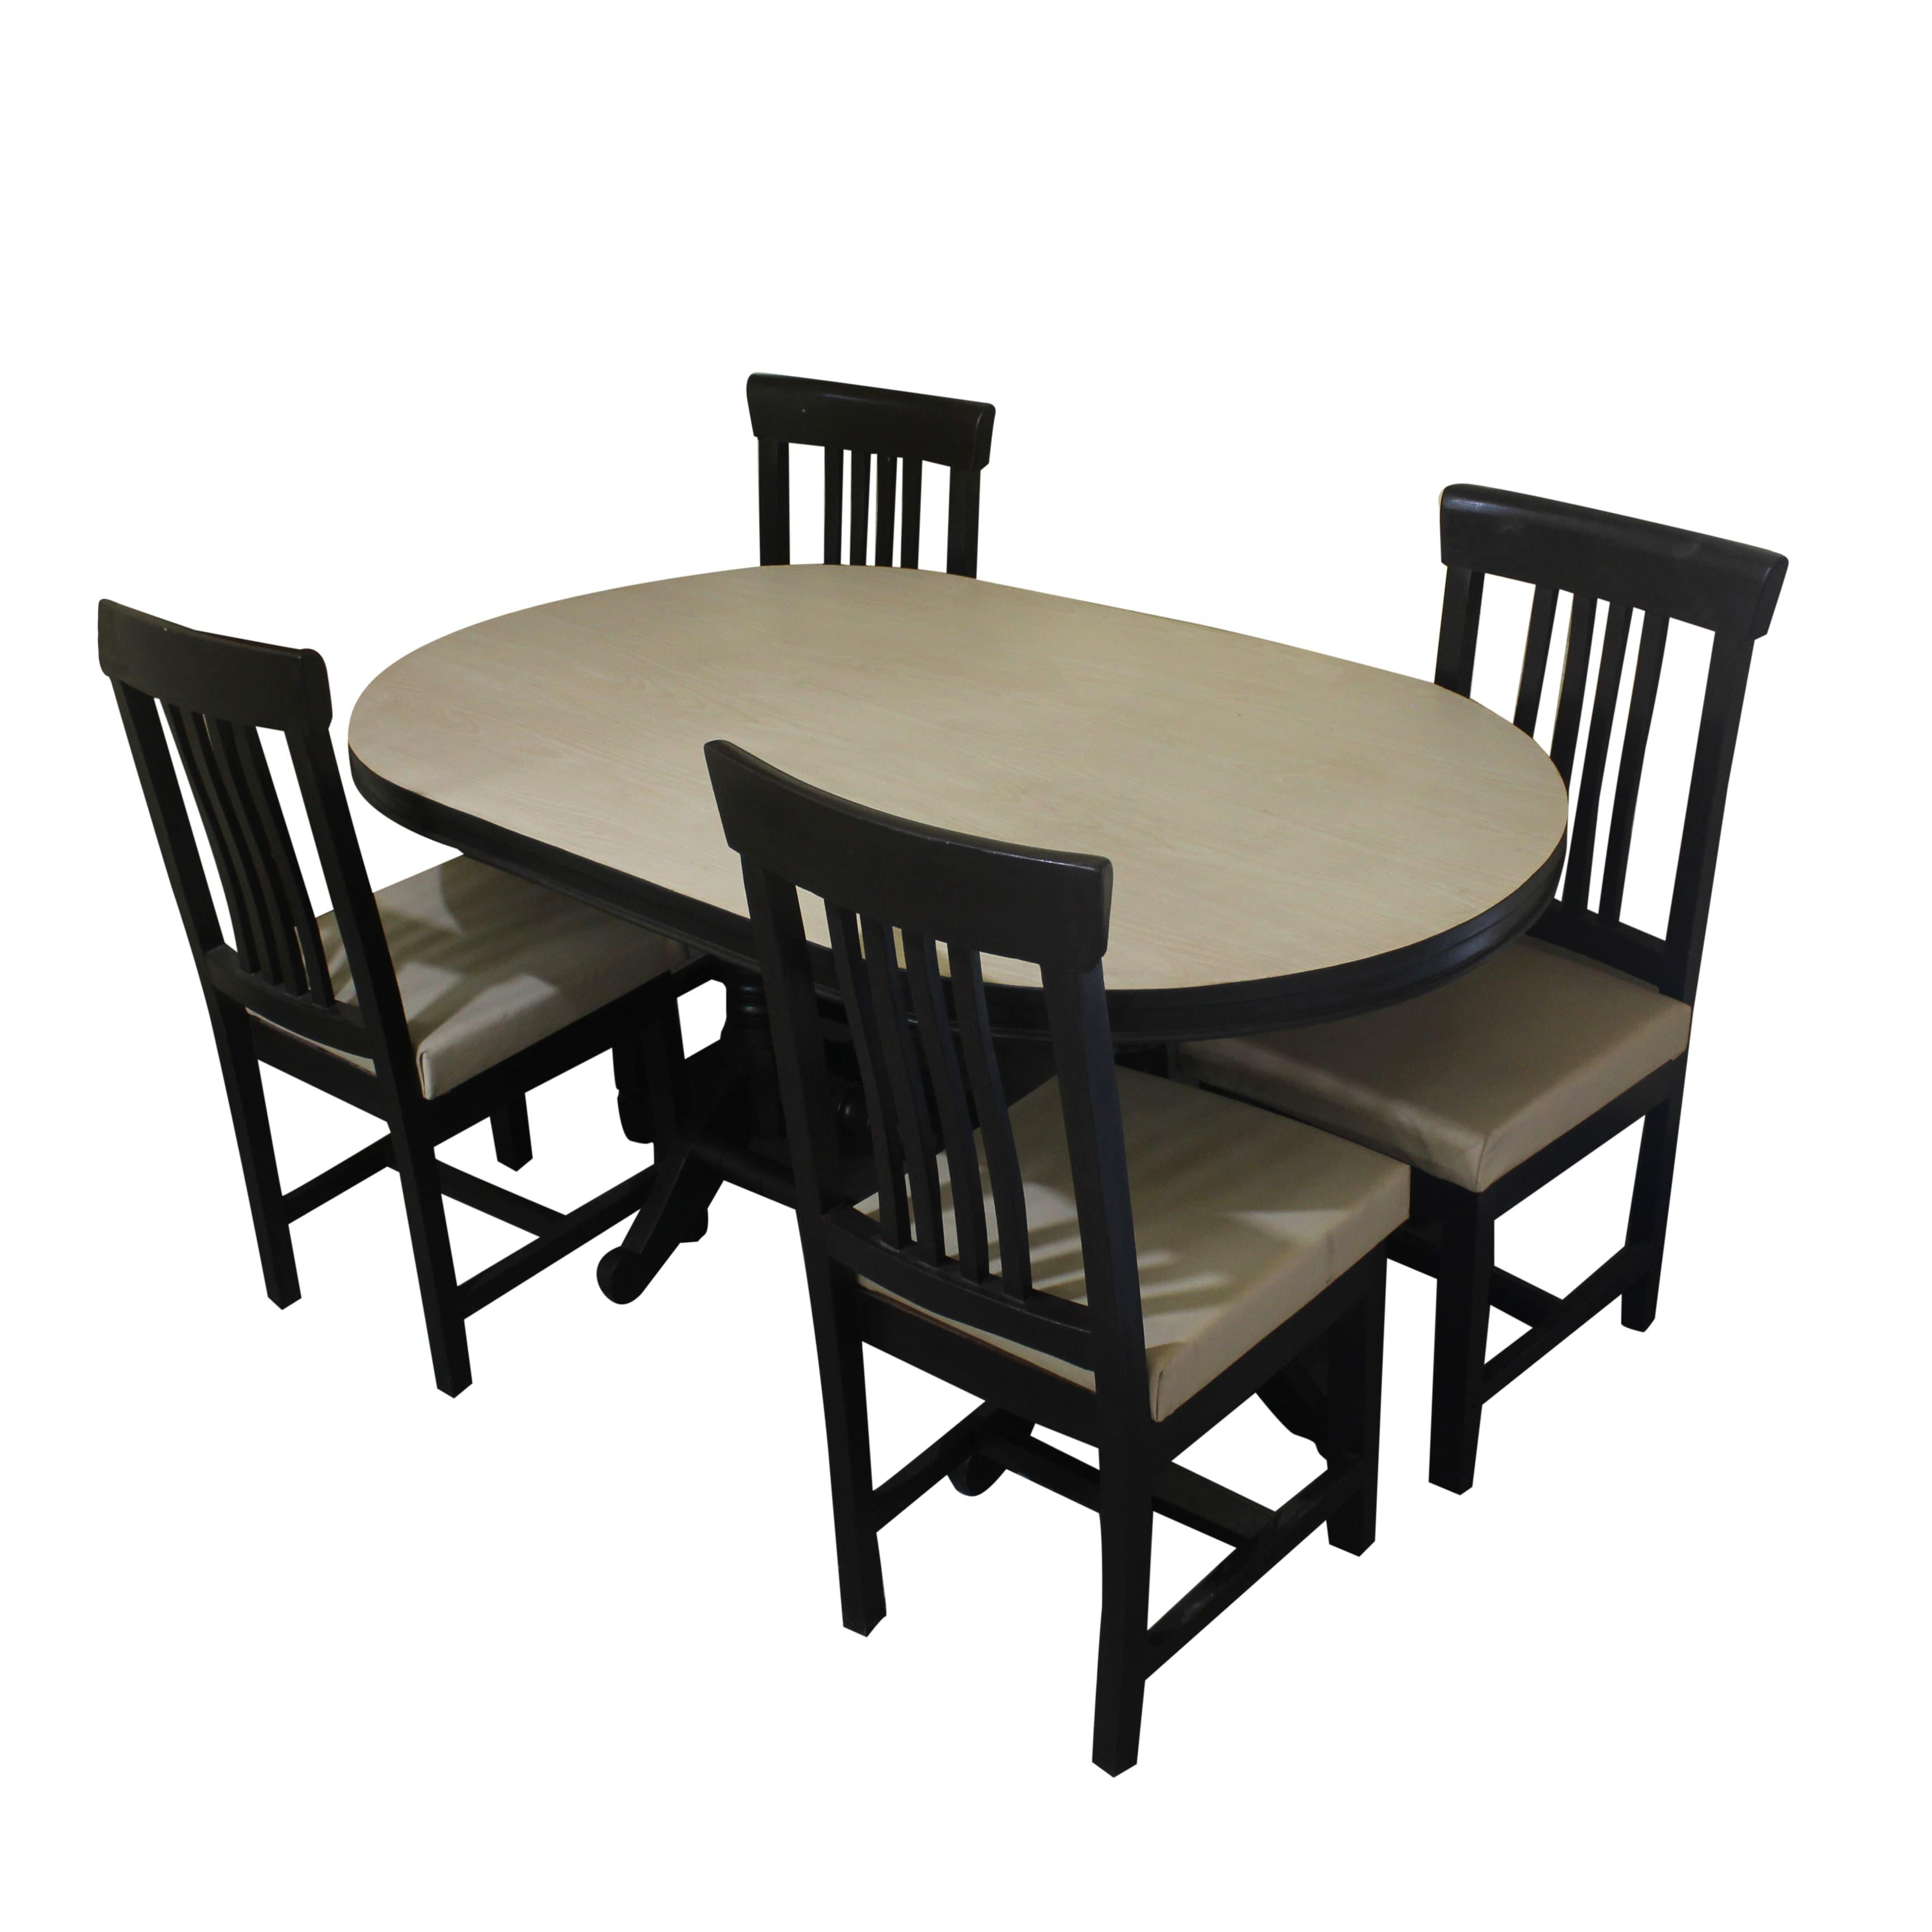 Widely Used Home Kitchen & Dining Furniture In Nepal At Best Prices – Daraz (View 19 of 20)